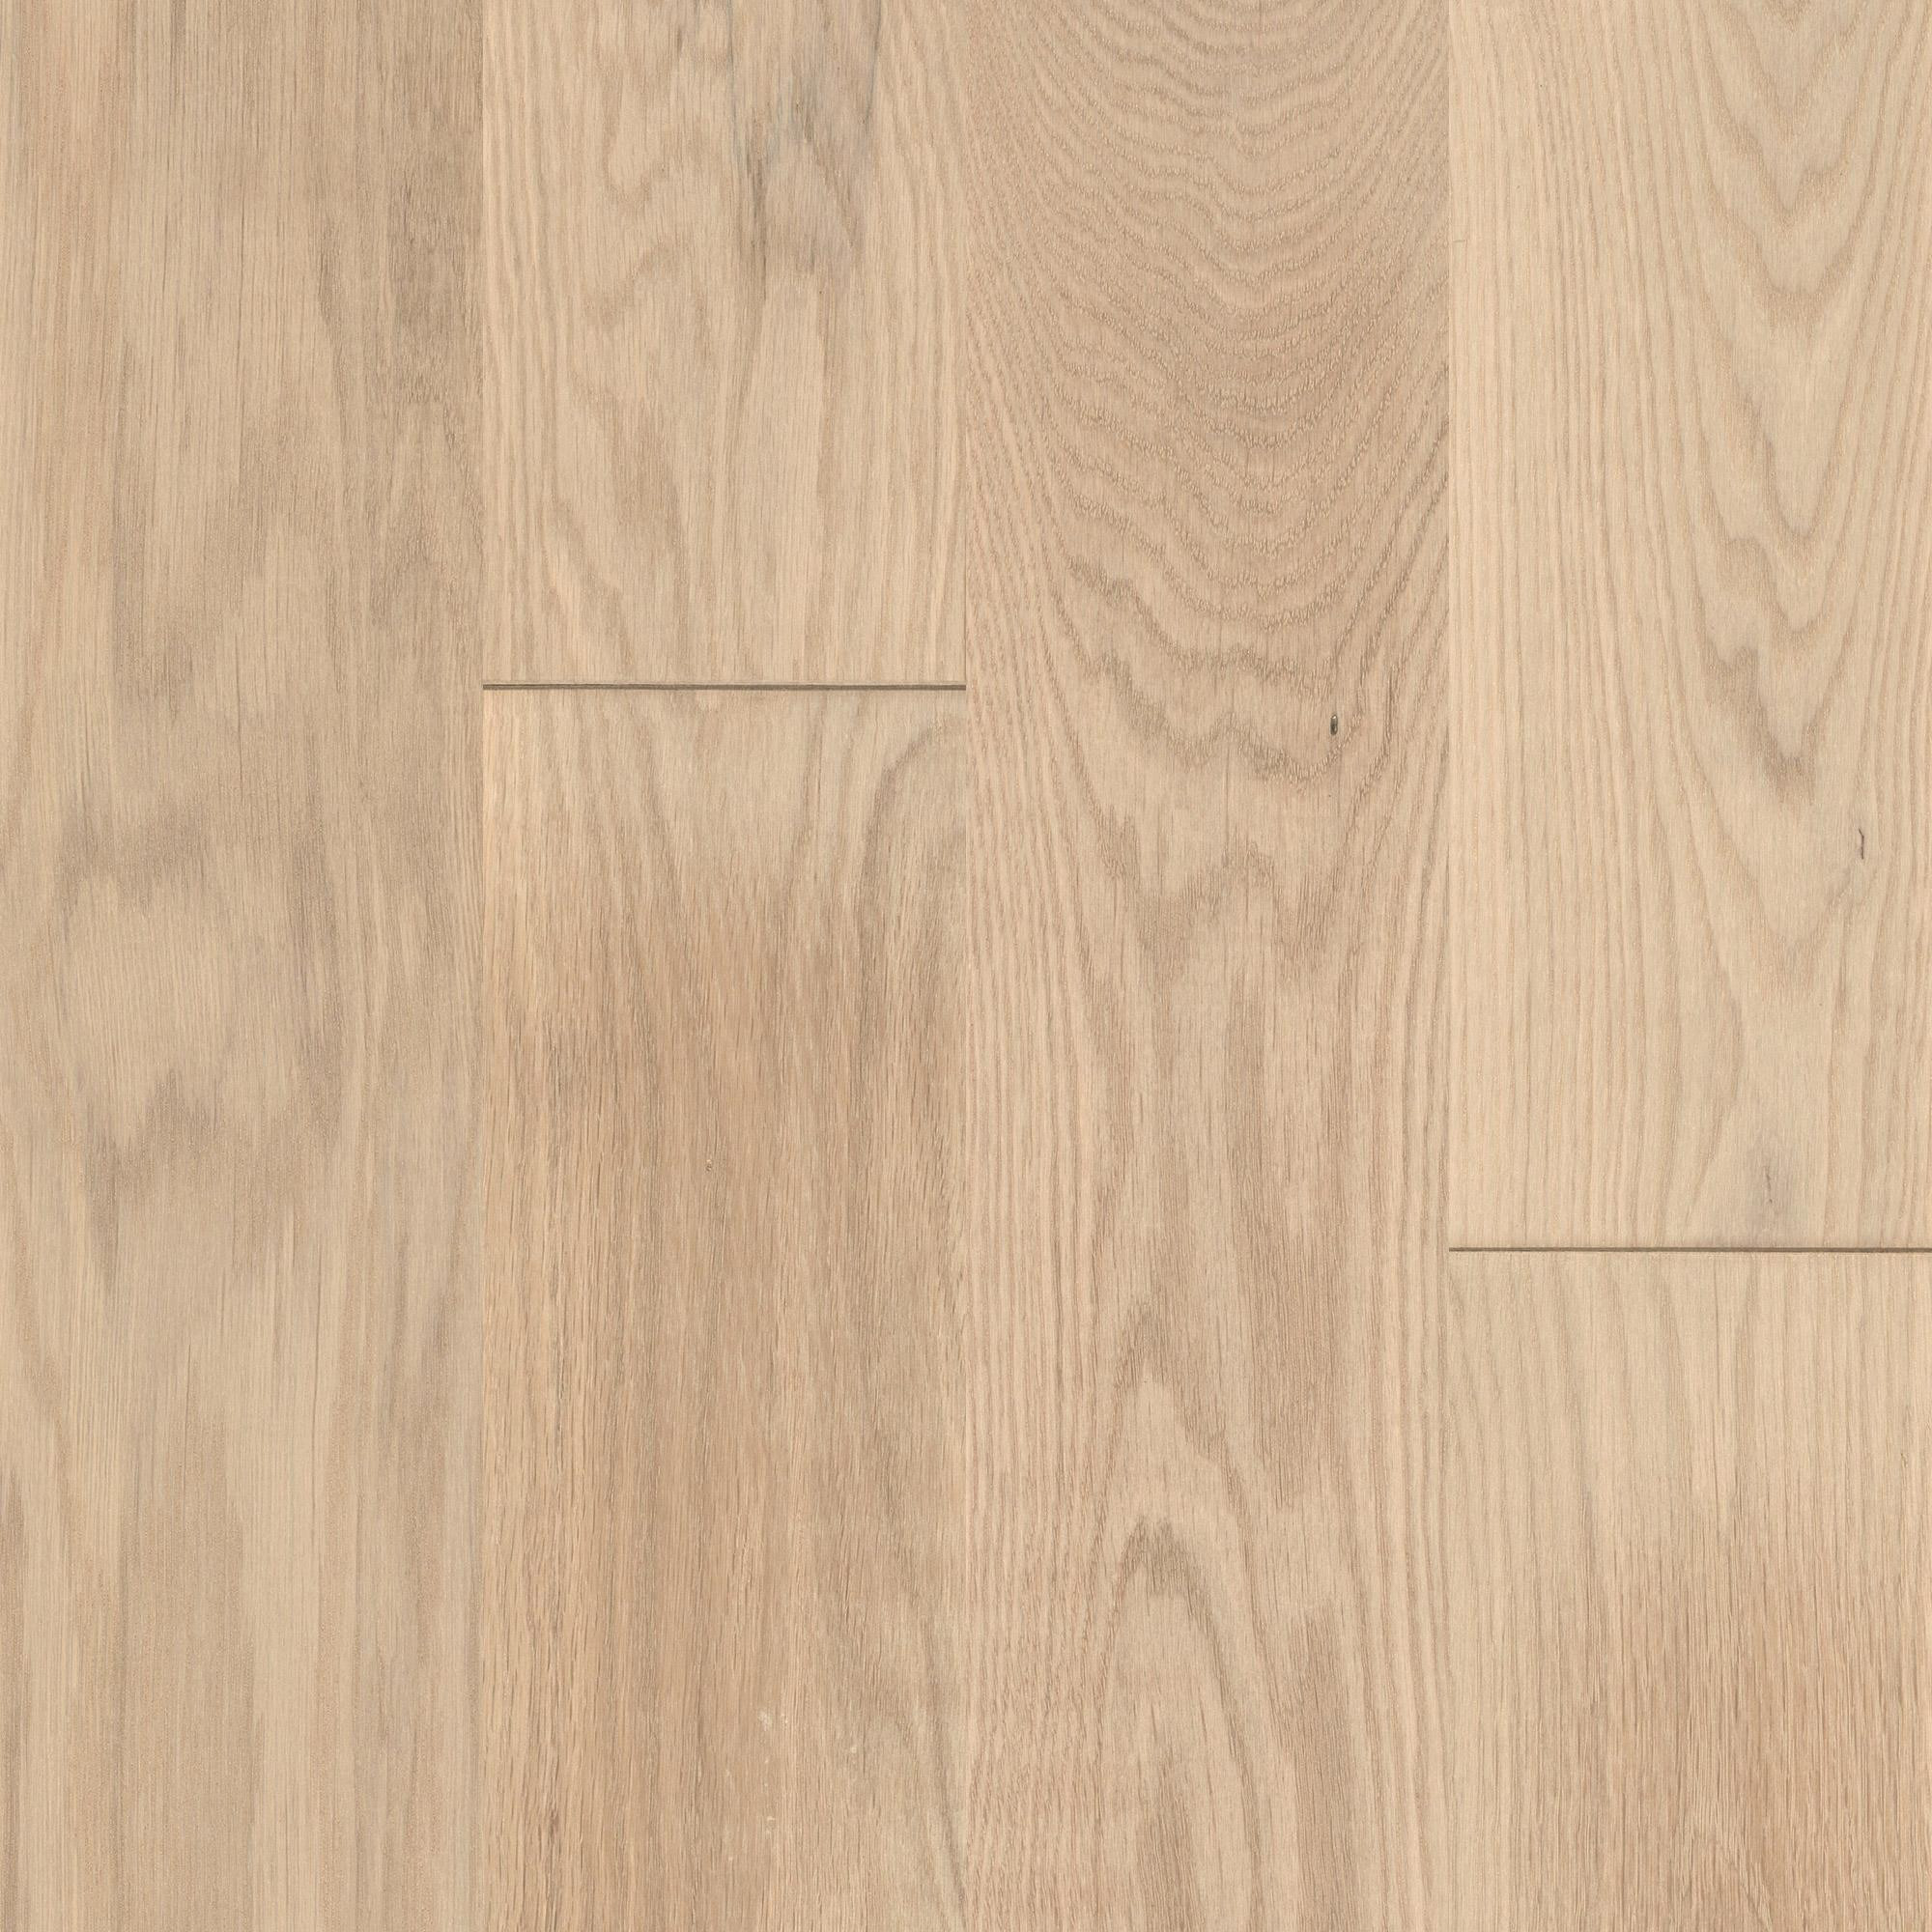 solid hardwood flooring canada of mullican castillian oak glacier 5 wide solid hardwood flooring within oak glacier castillian 5 x 55 approved